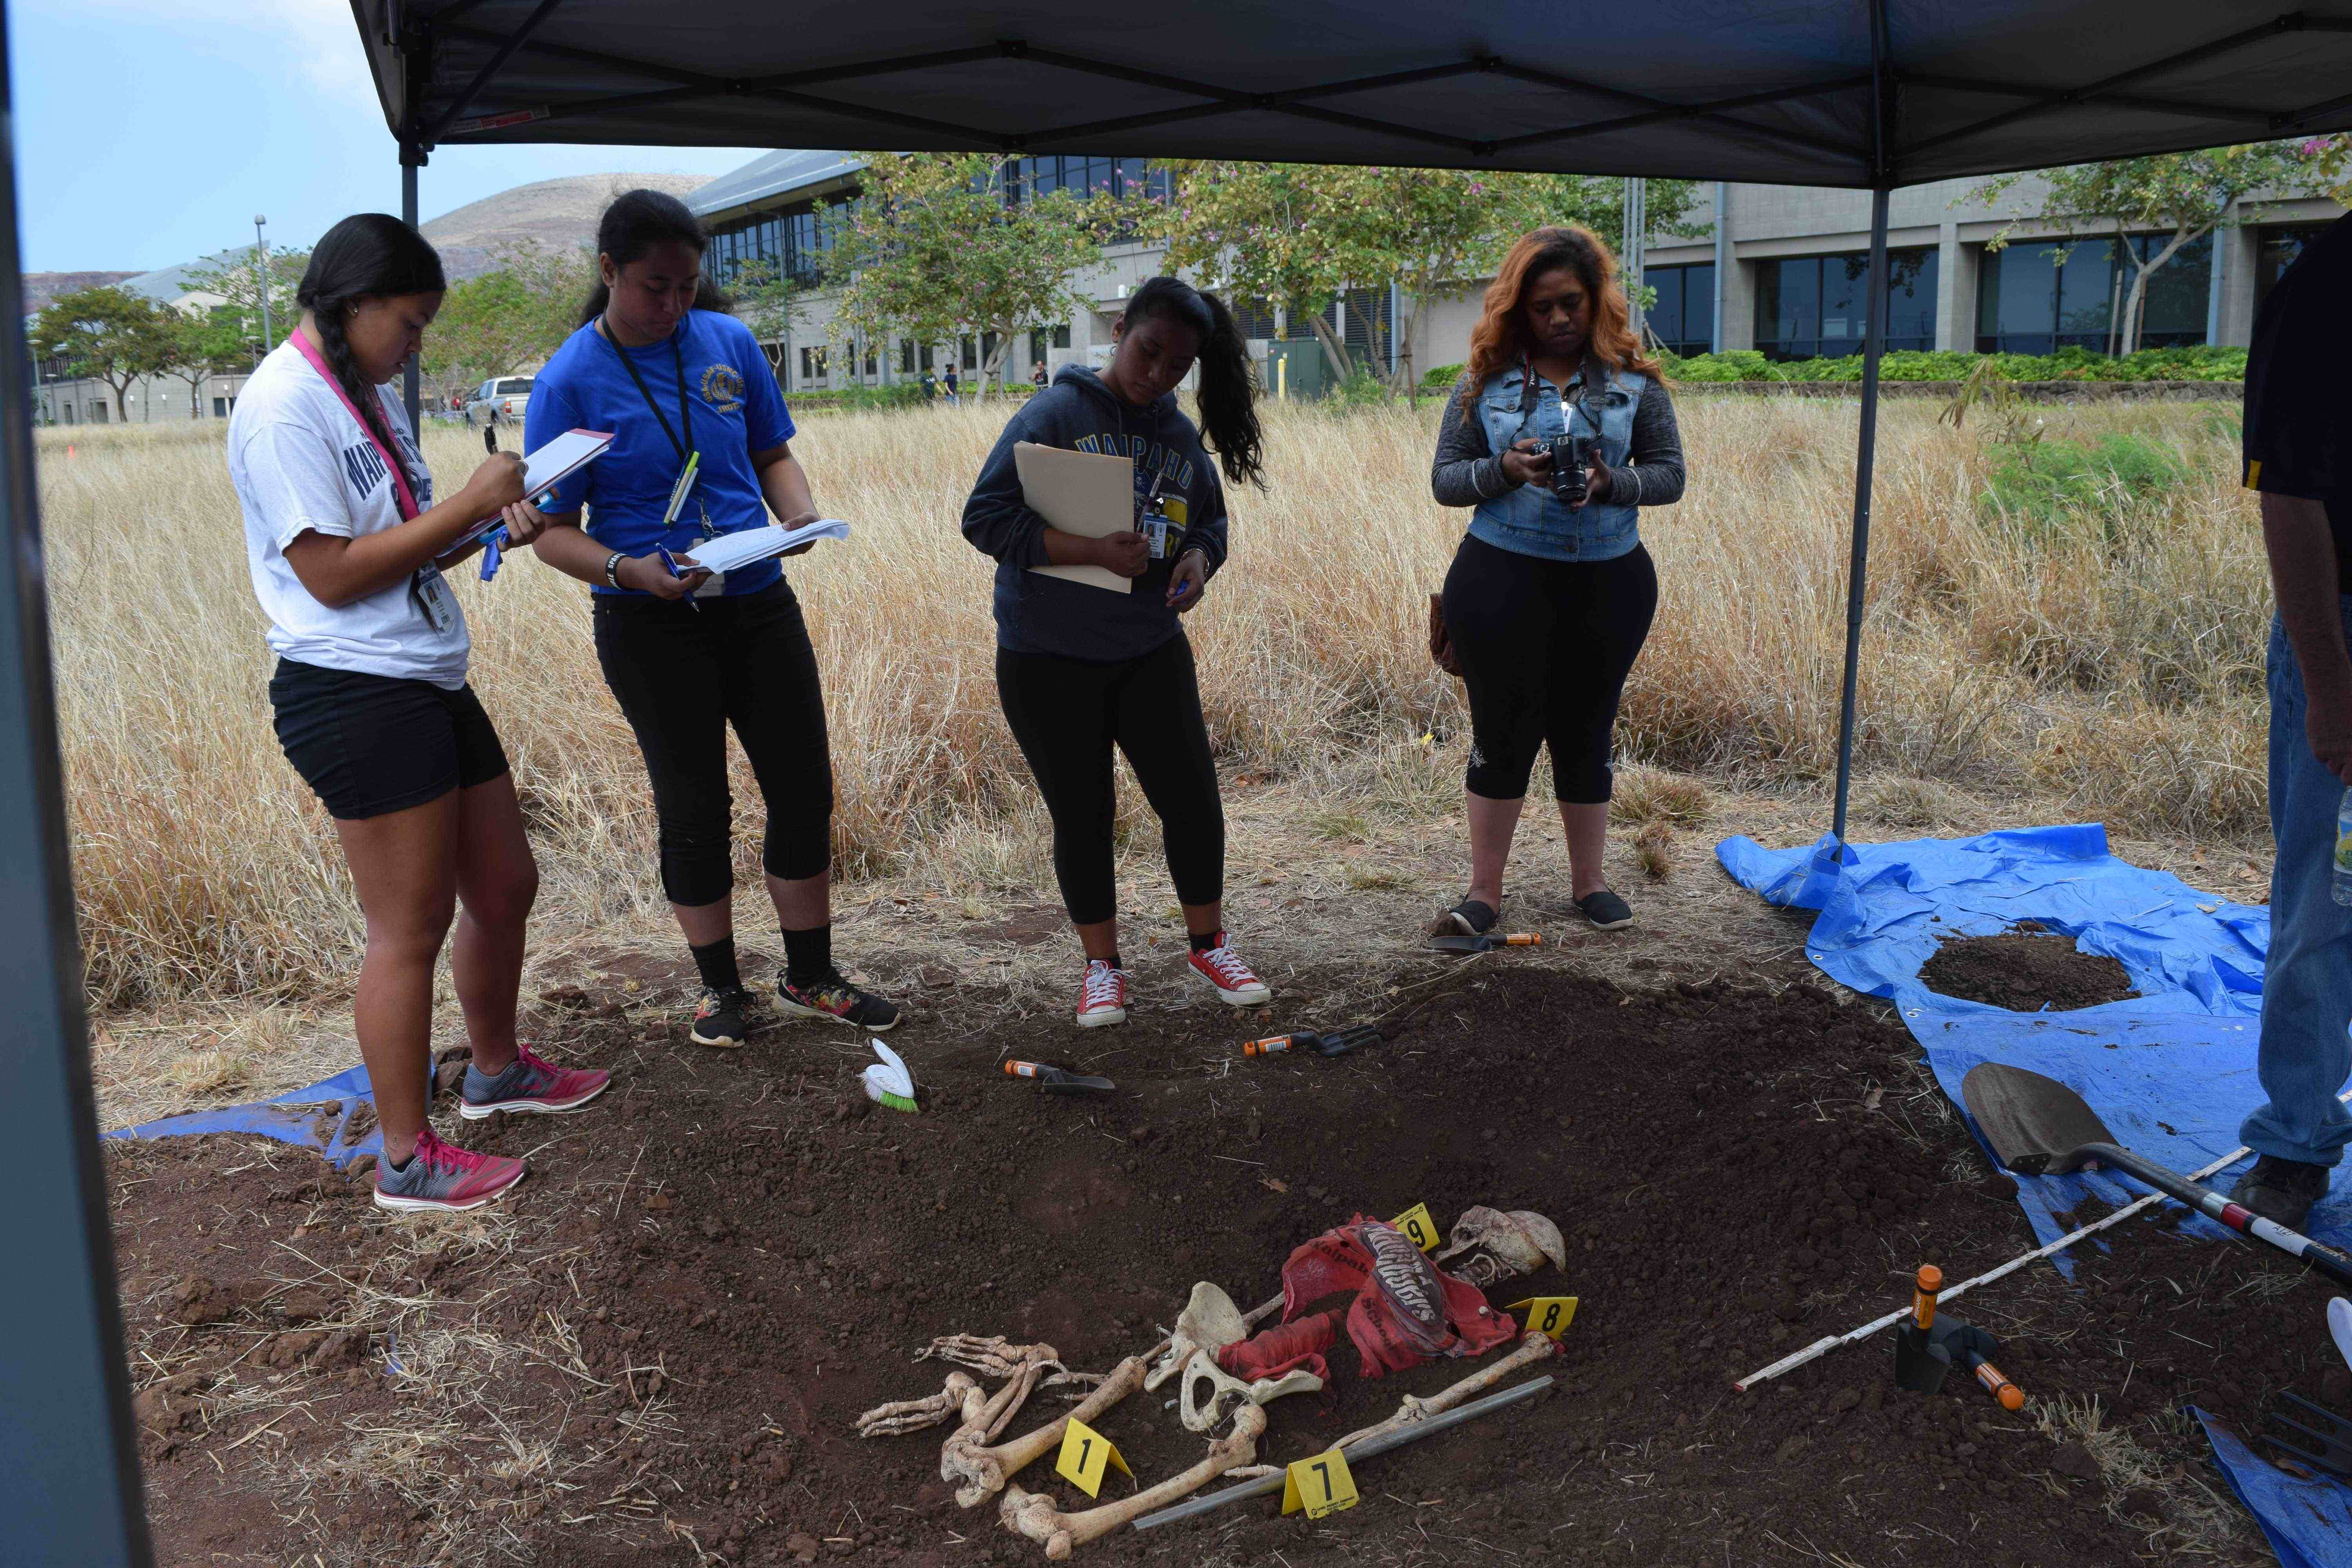 Students investigating bones at fake crime scene